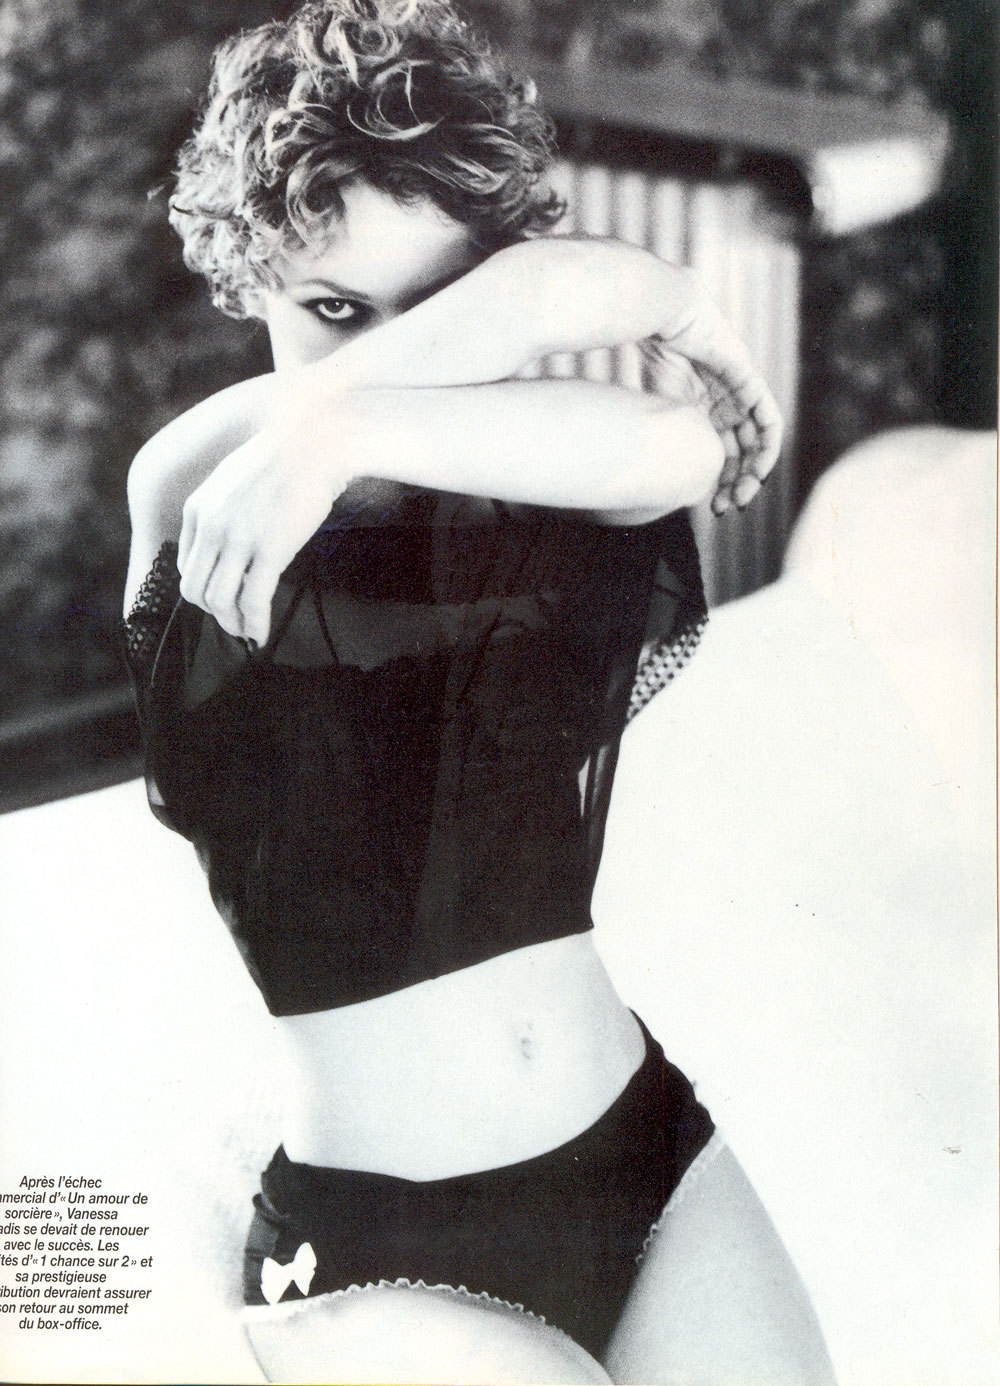 Venessa Paradis / Ellen Von Unwerth / Paris Match March 1998